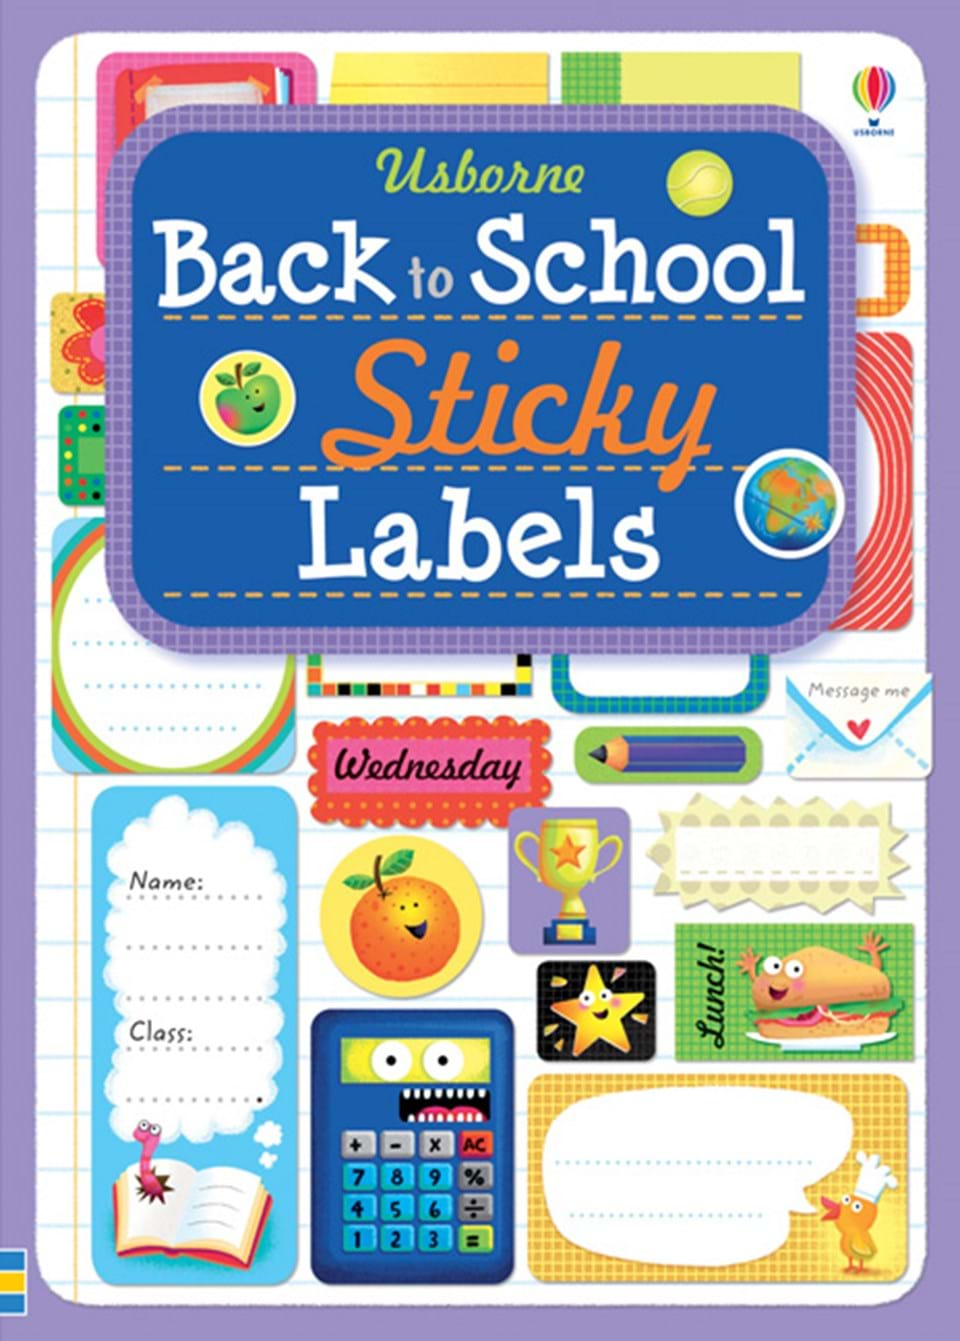 "back to school sticky labels"" at usborne books at home"